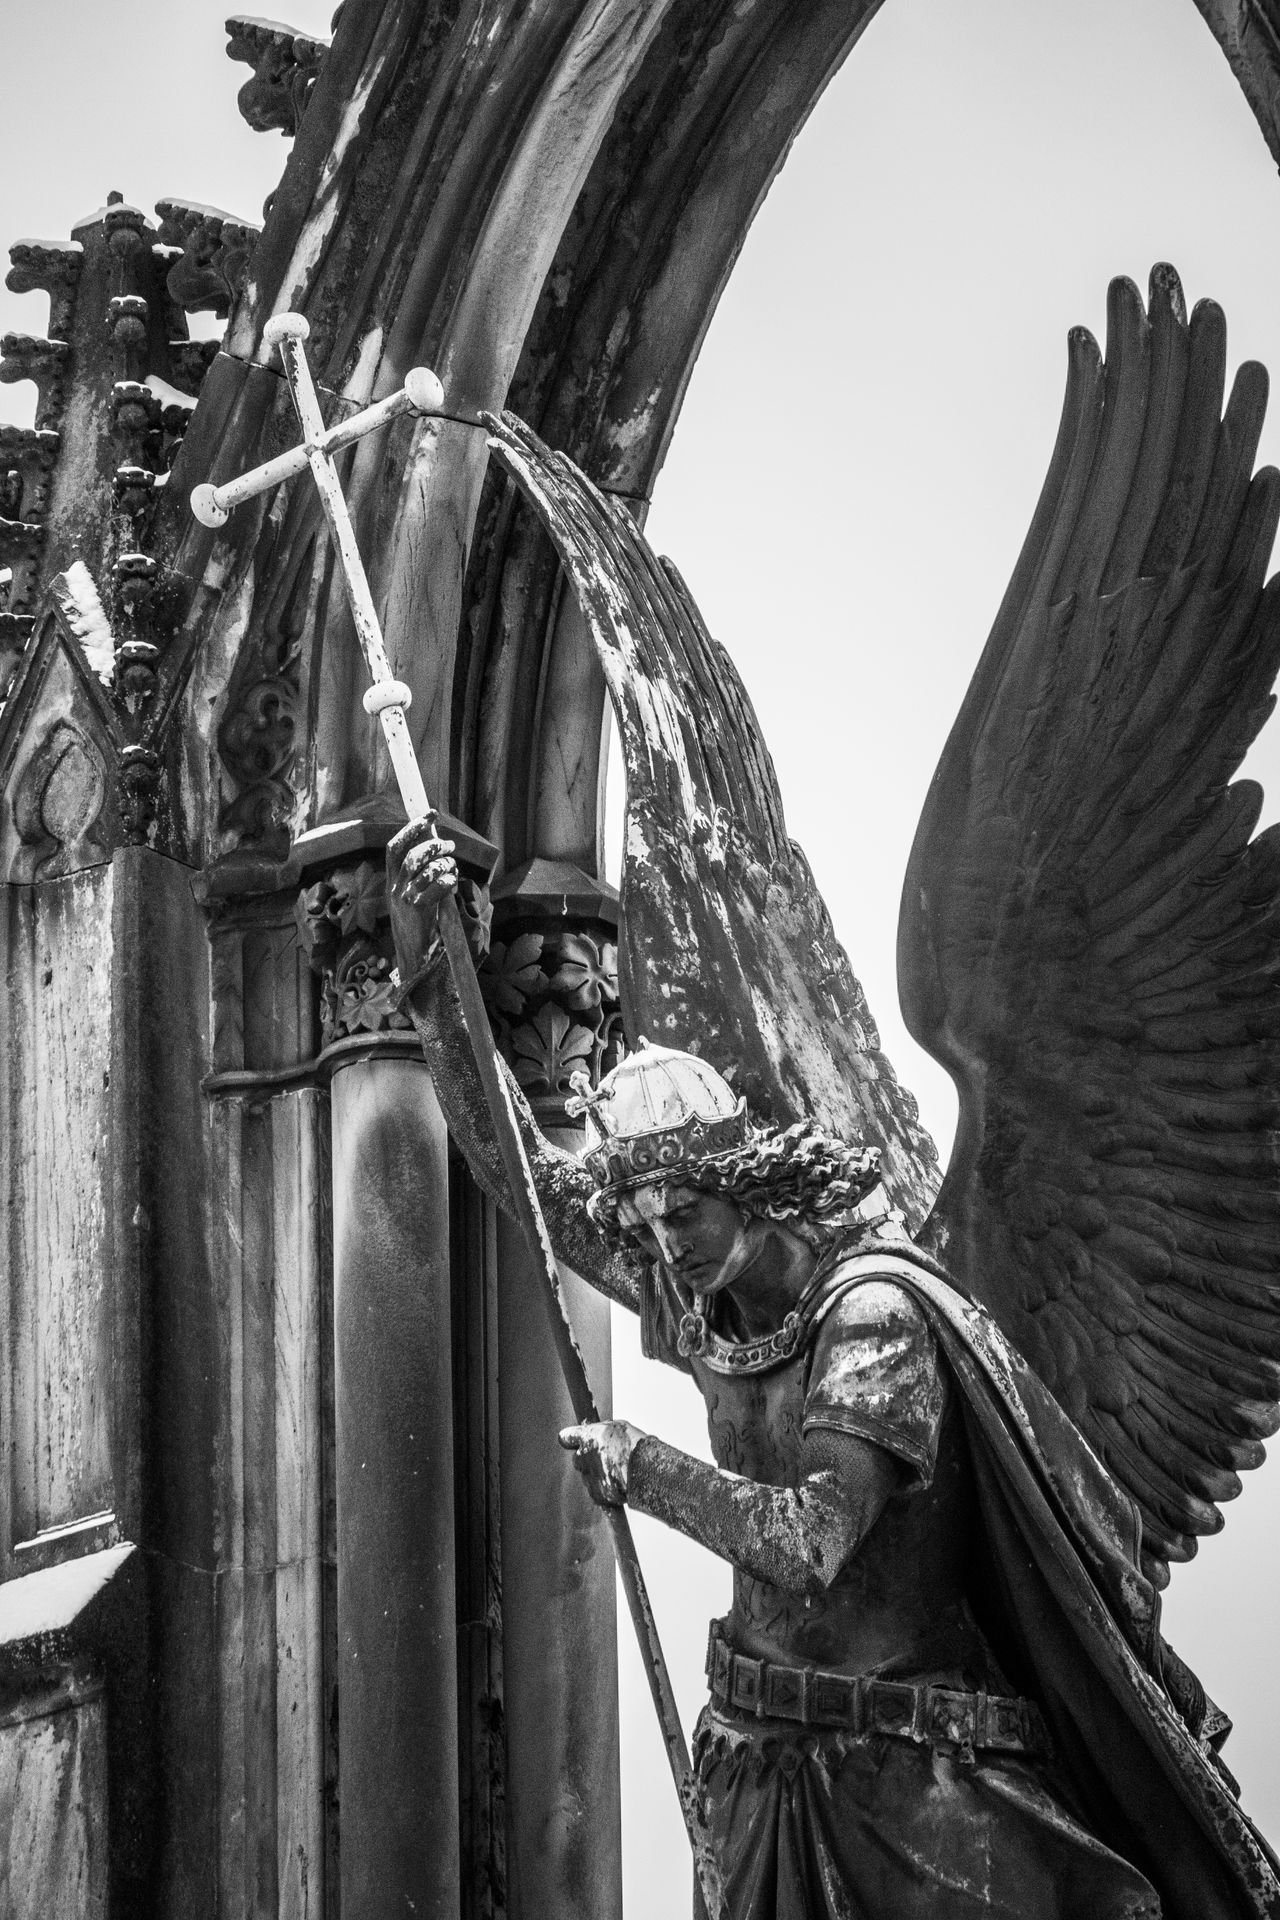 Archangel Archangel Michael Architecture Babelsberger Park Black & White Black And White Photography Blackandwhite Close-up Erzengel Michael Outdoors Potsdam Snow Statue Winter